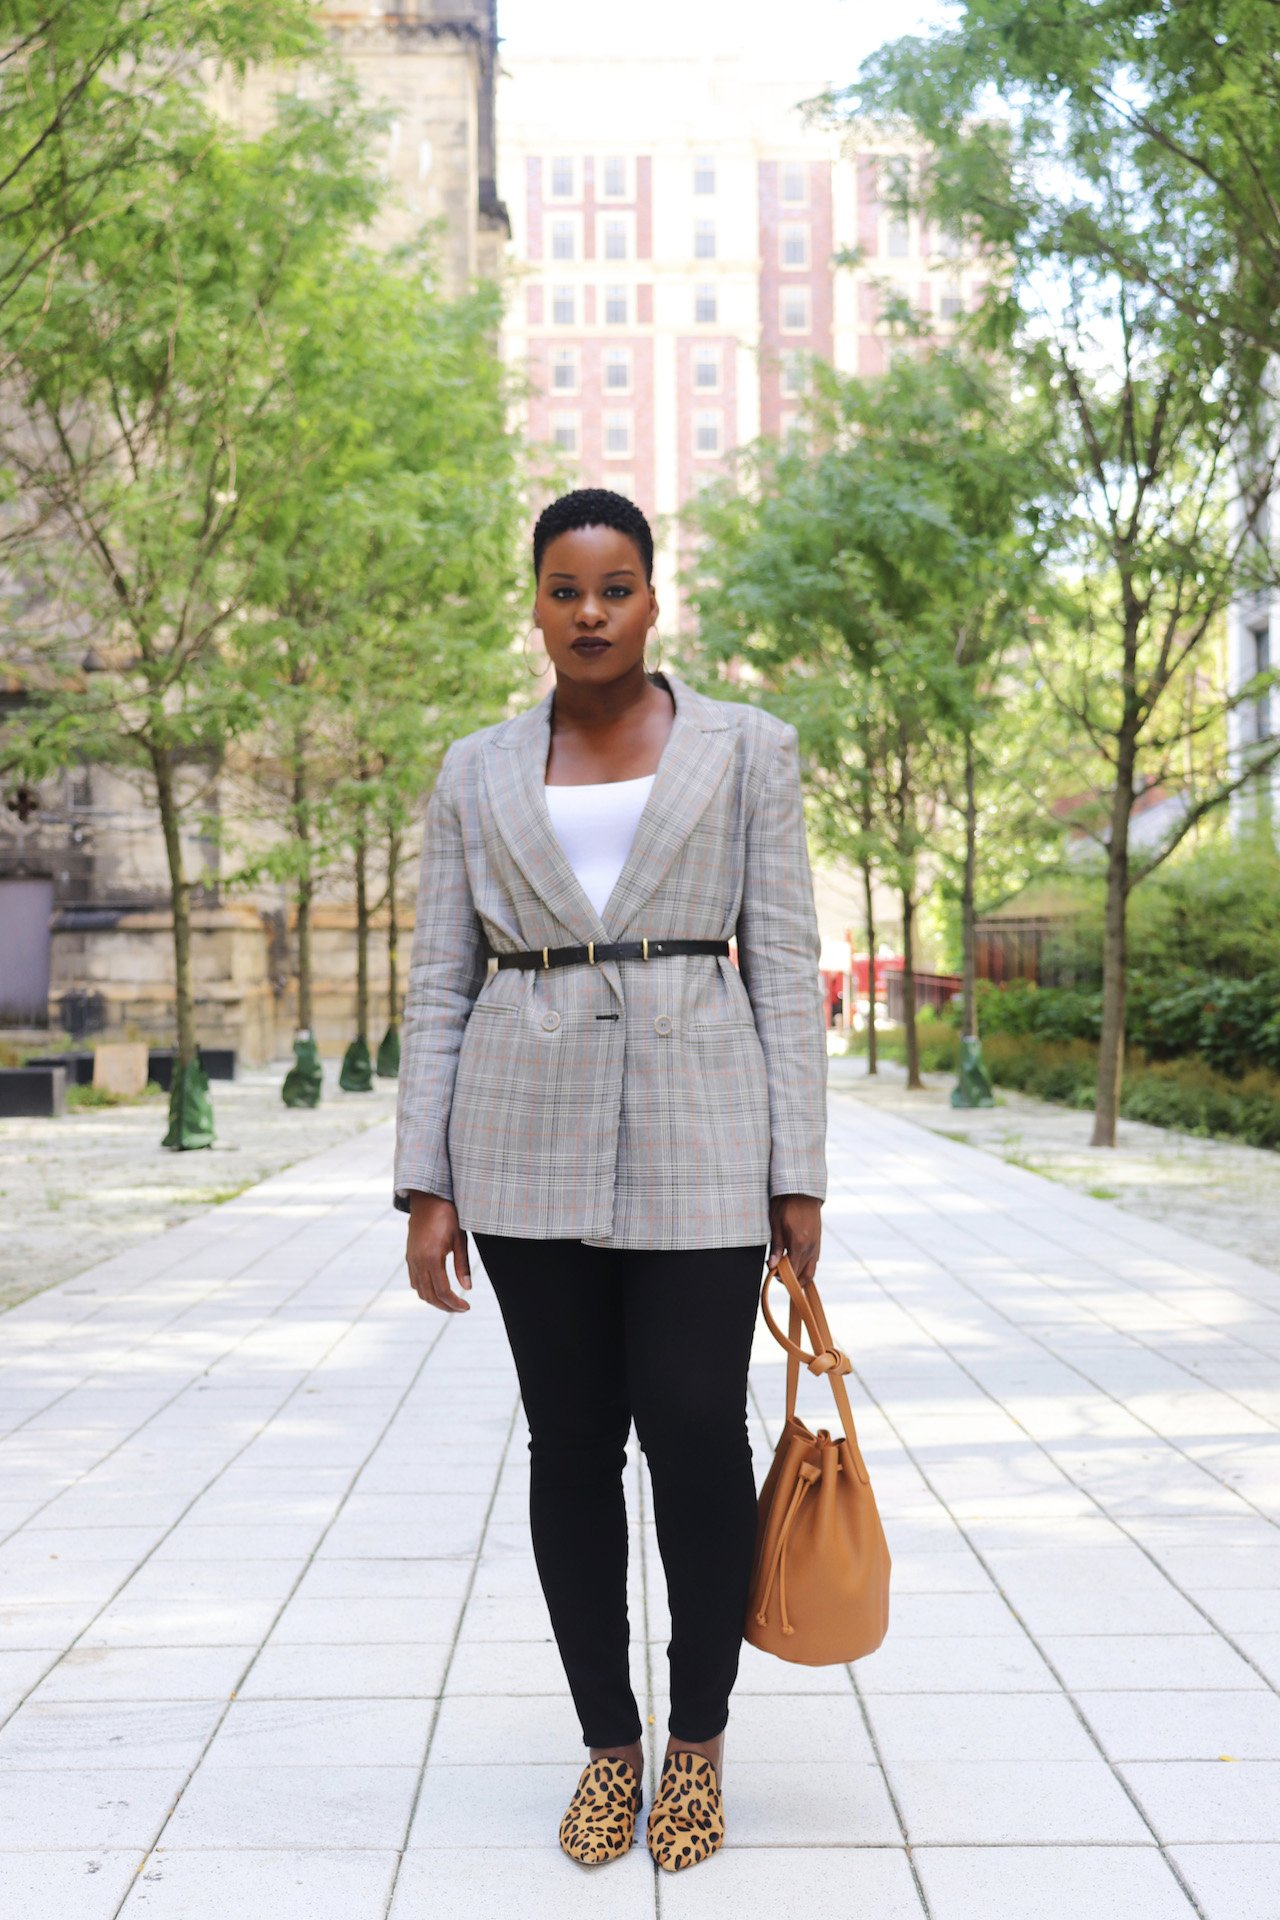 Glen Plaid Blazer with Leopard Mules Outfit